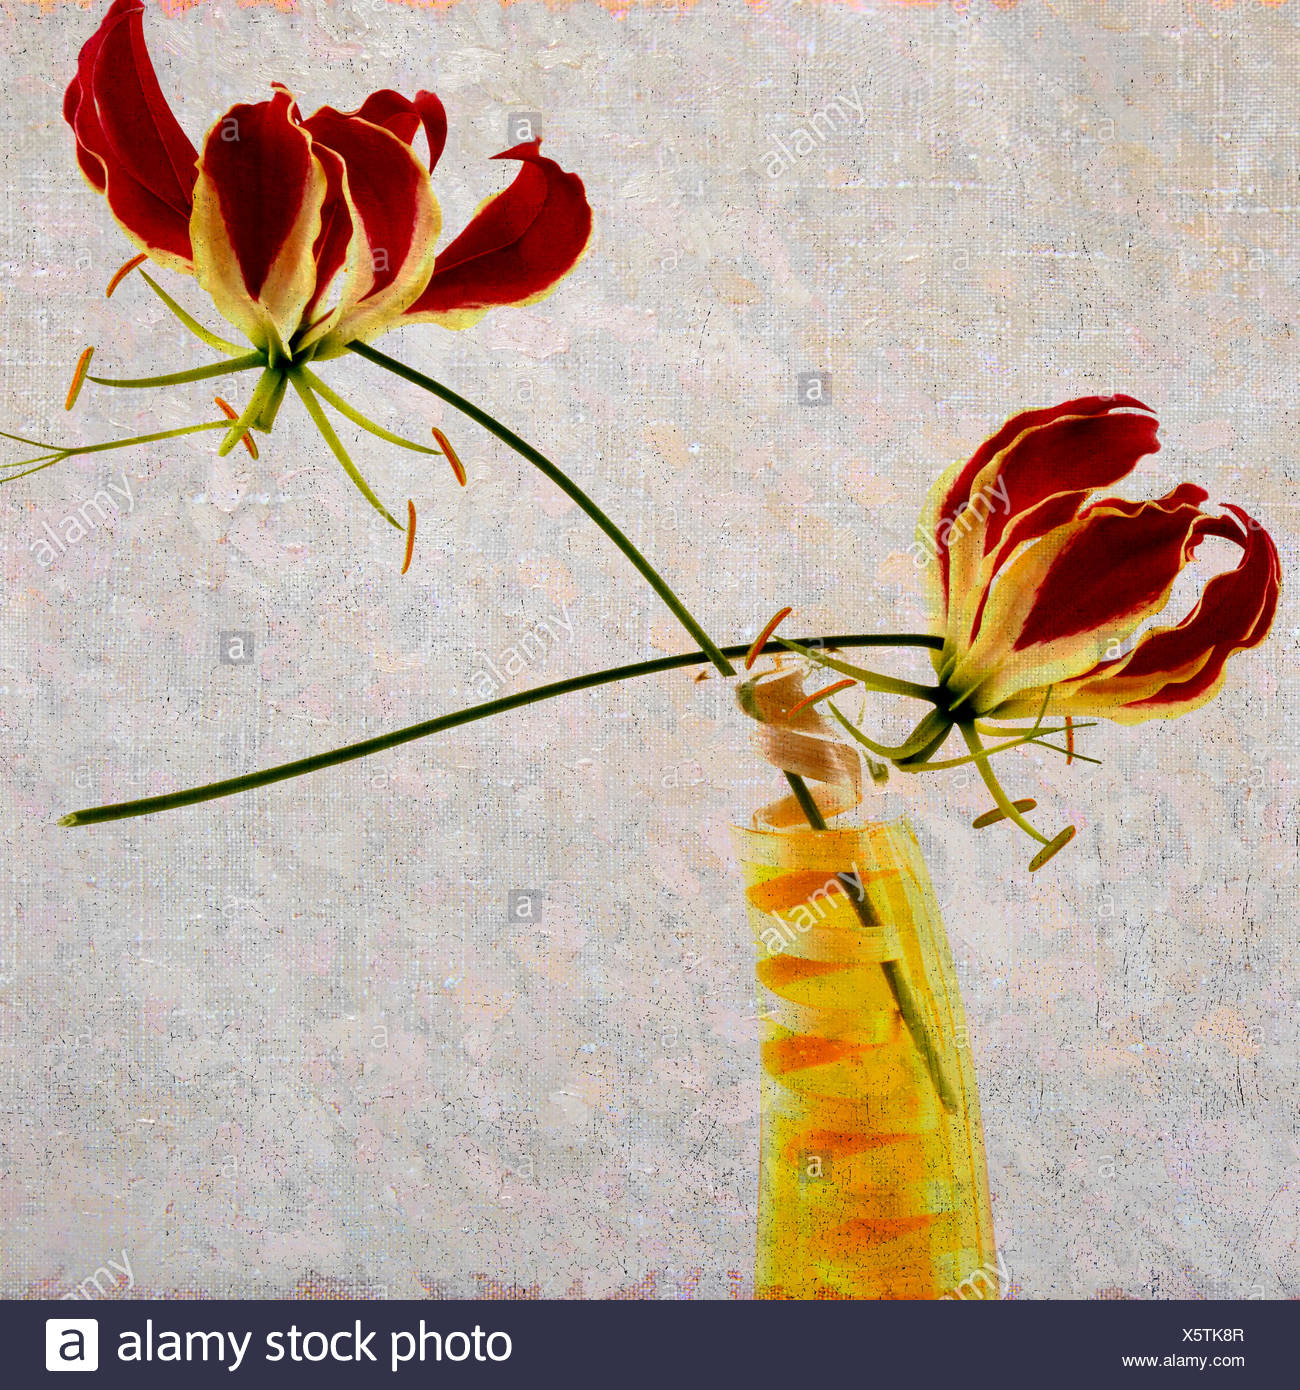 Red Lilies Flowers Stock Photos Red Lilies Flowers Stock Images